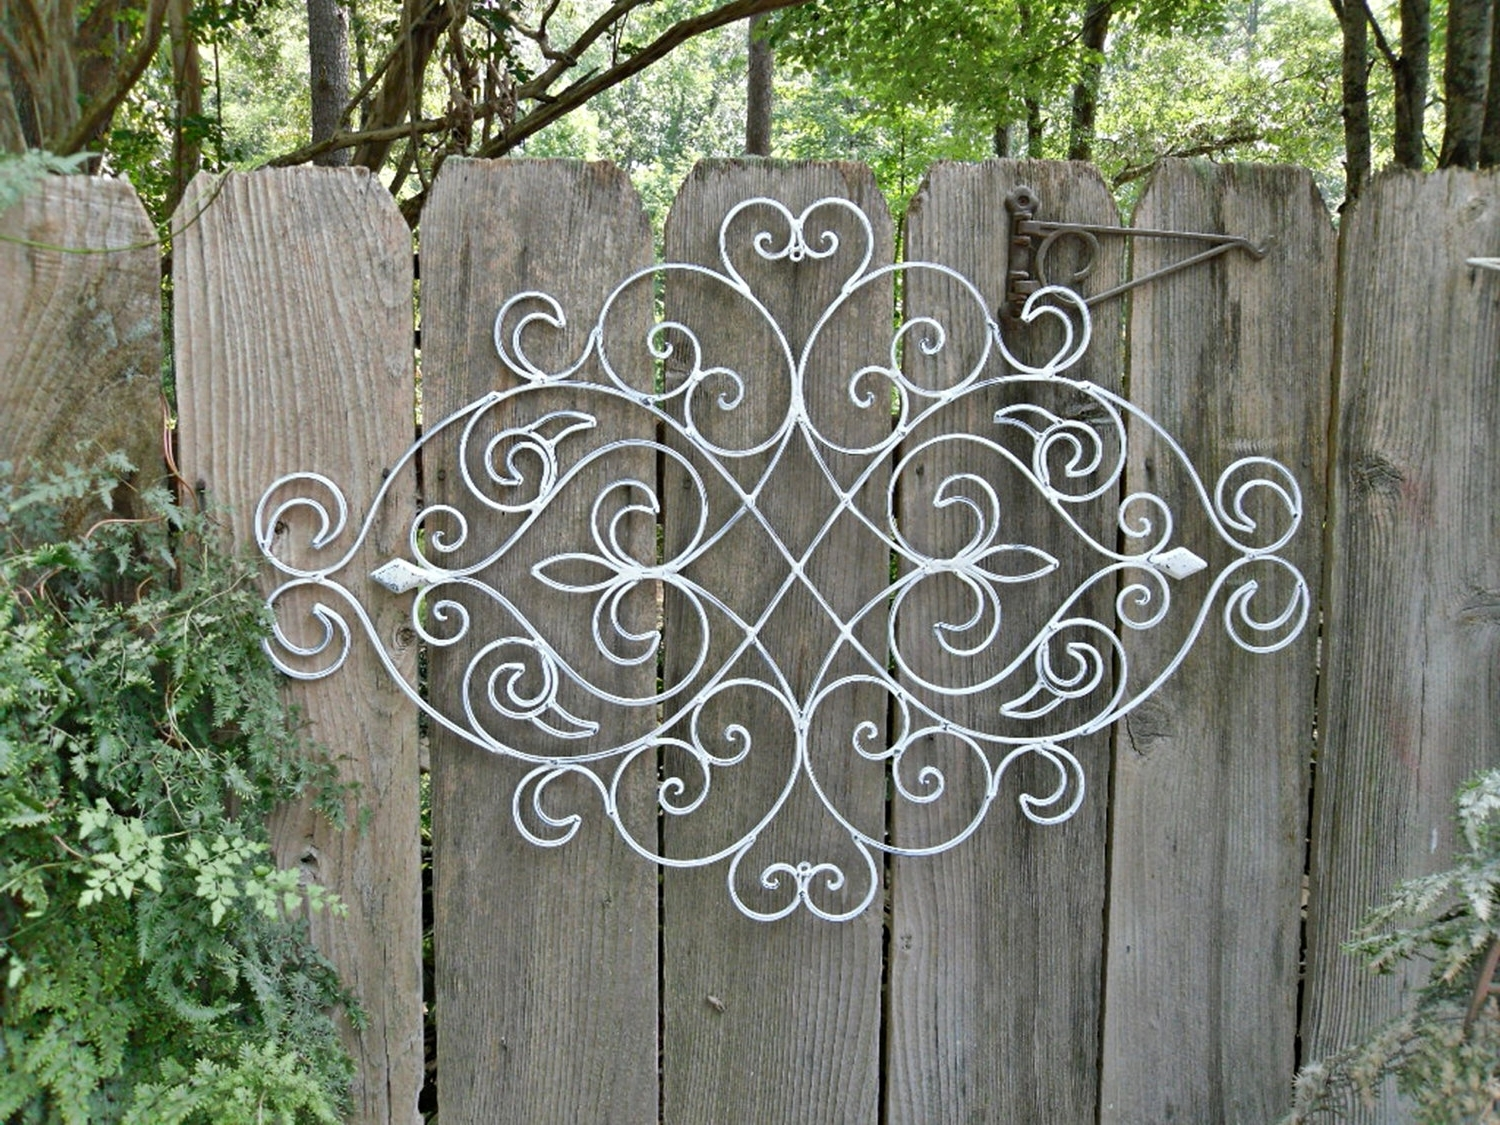 Current Outdoor Wall Decor Amazon Metal Art For Walls Large Sculptures Sale Throughout Large Outdoor Wall Art (View 2 of 15)